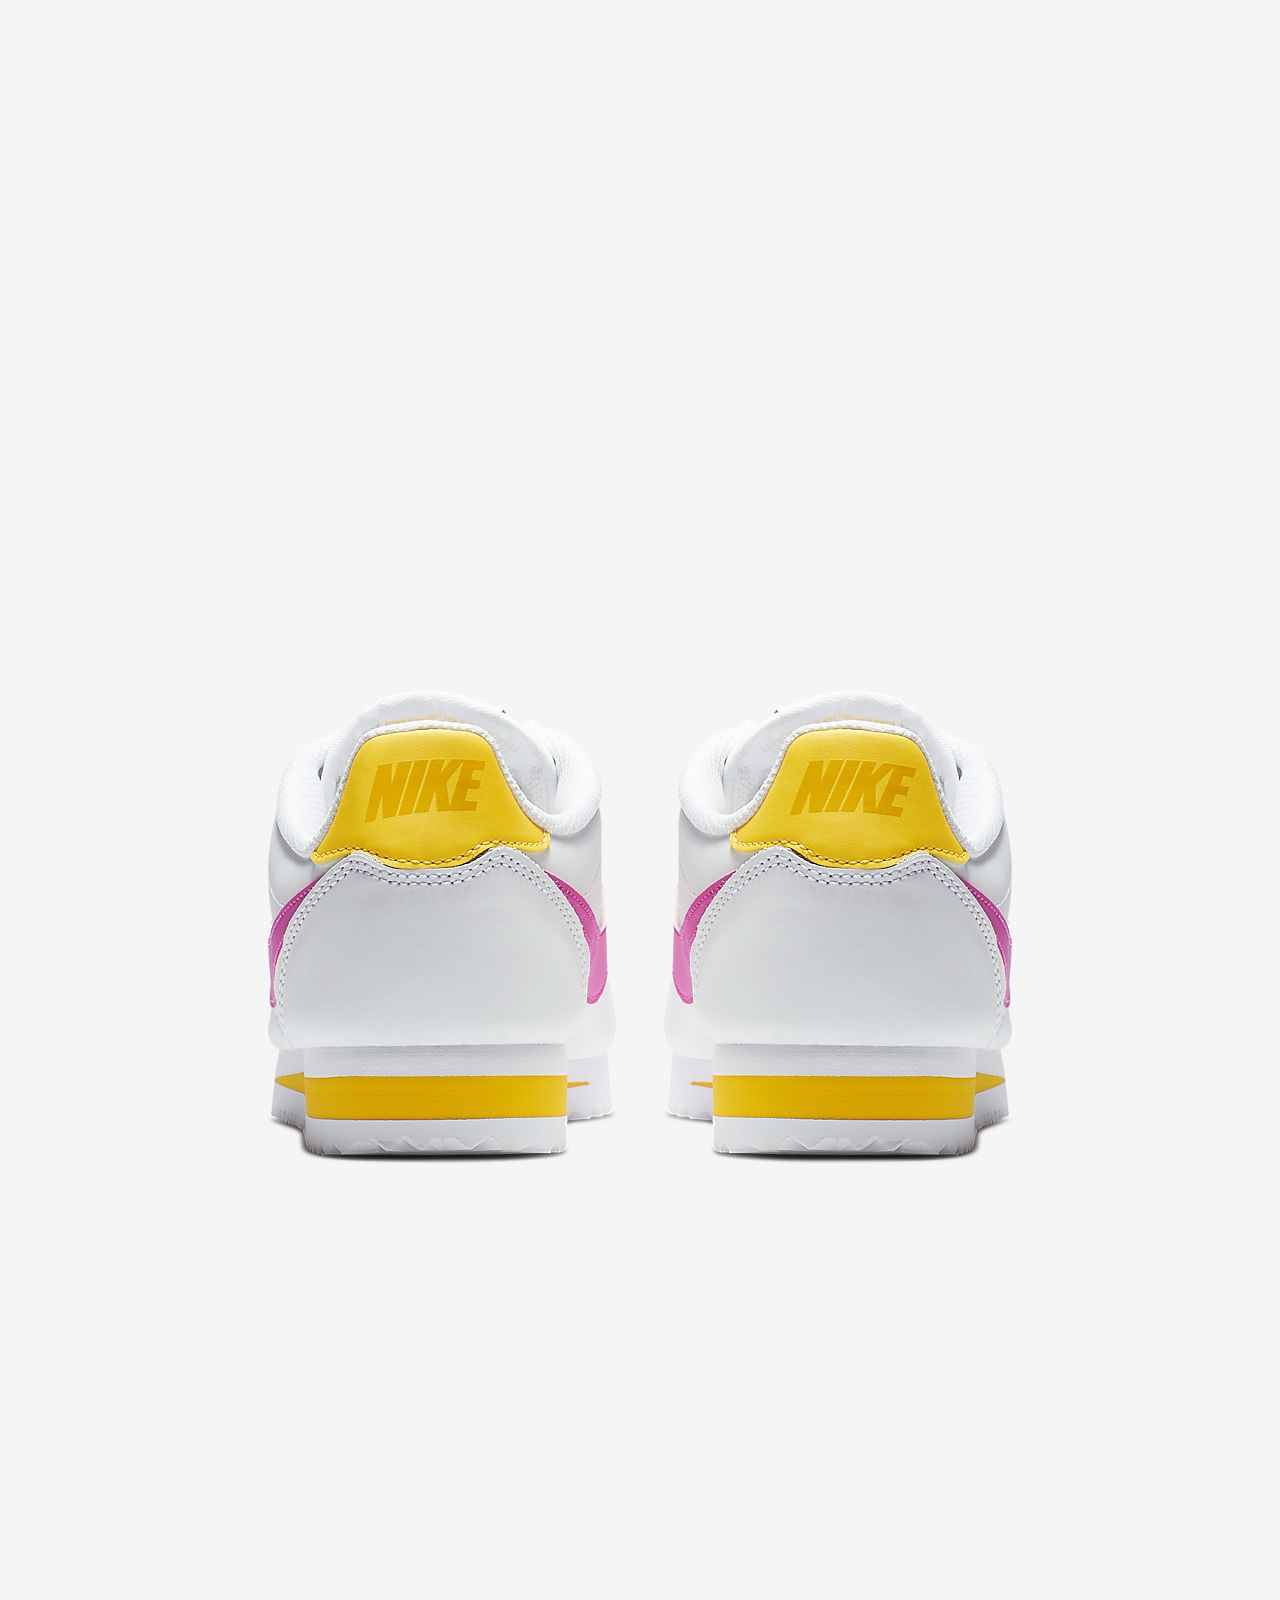 free shipping 89bbe f109b ... Chaussure Nike Classic Cortez pour Femme